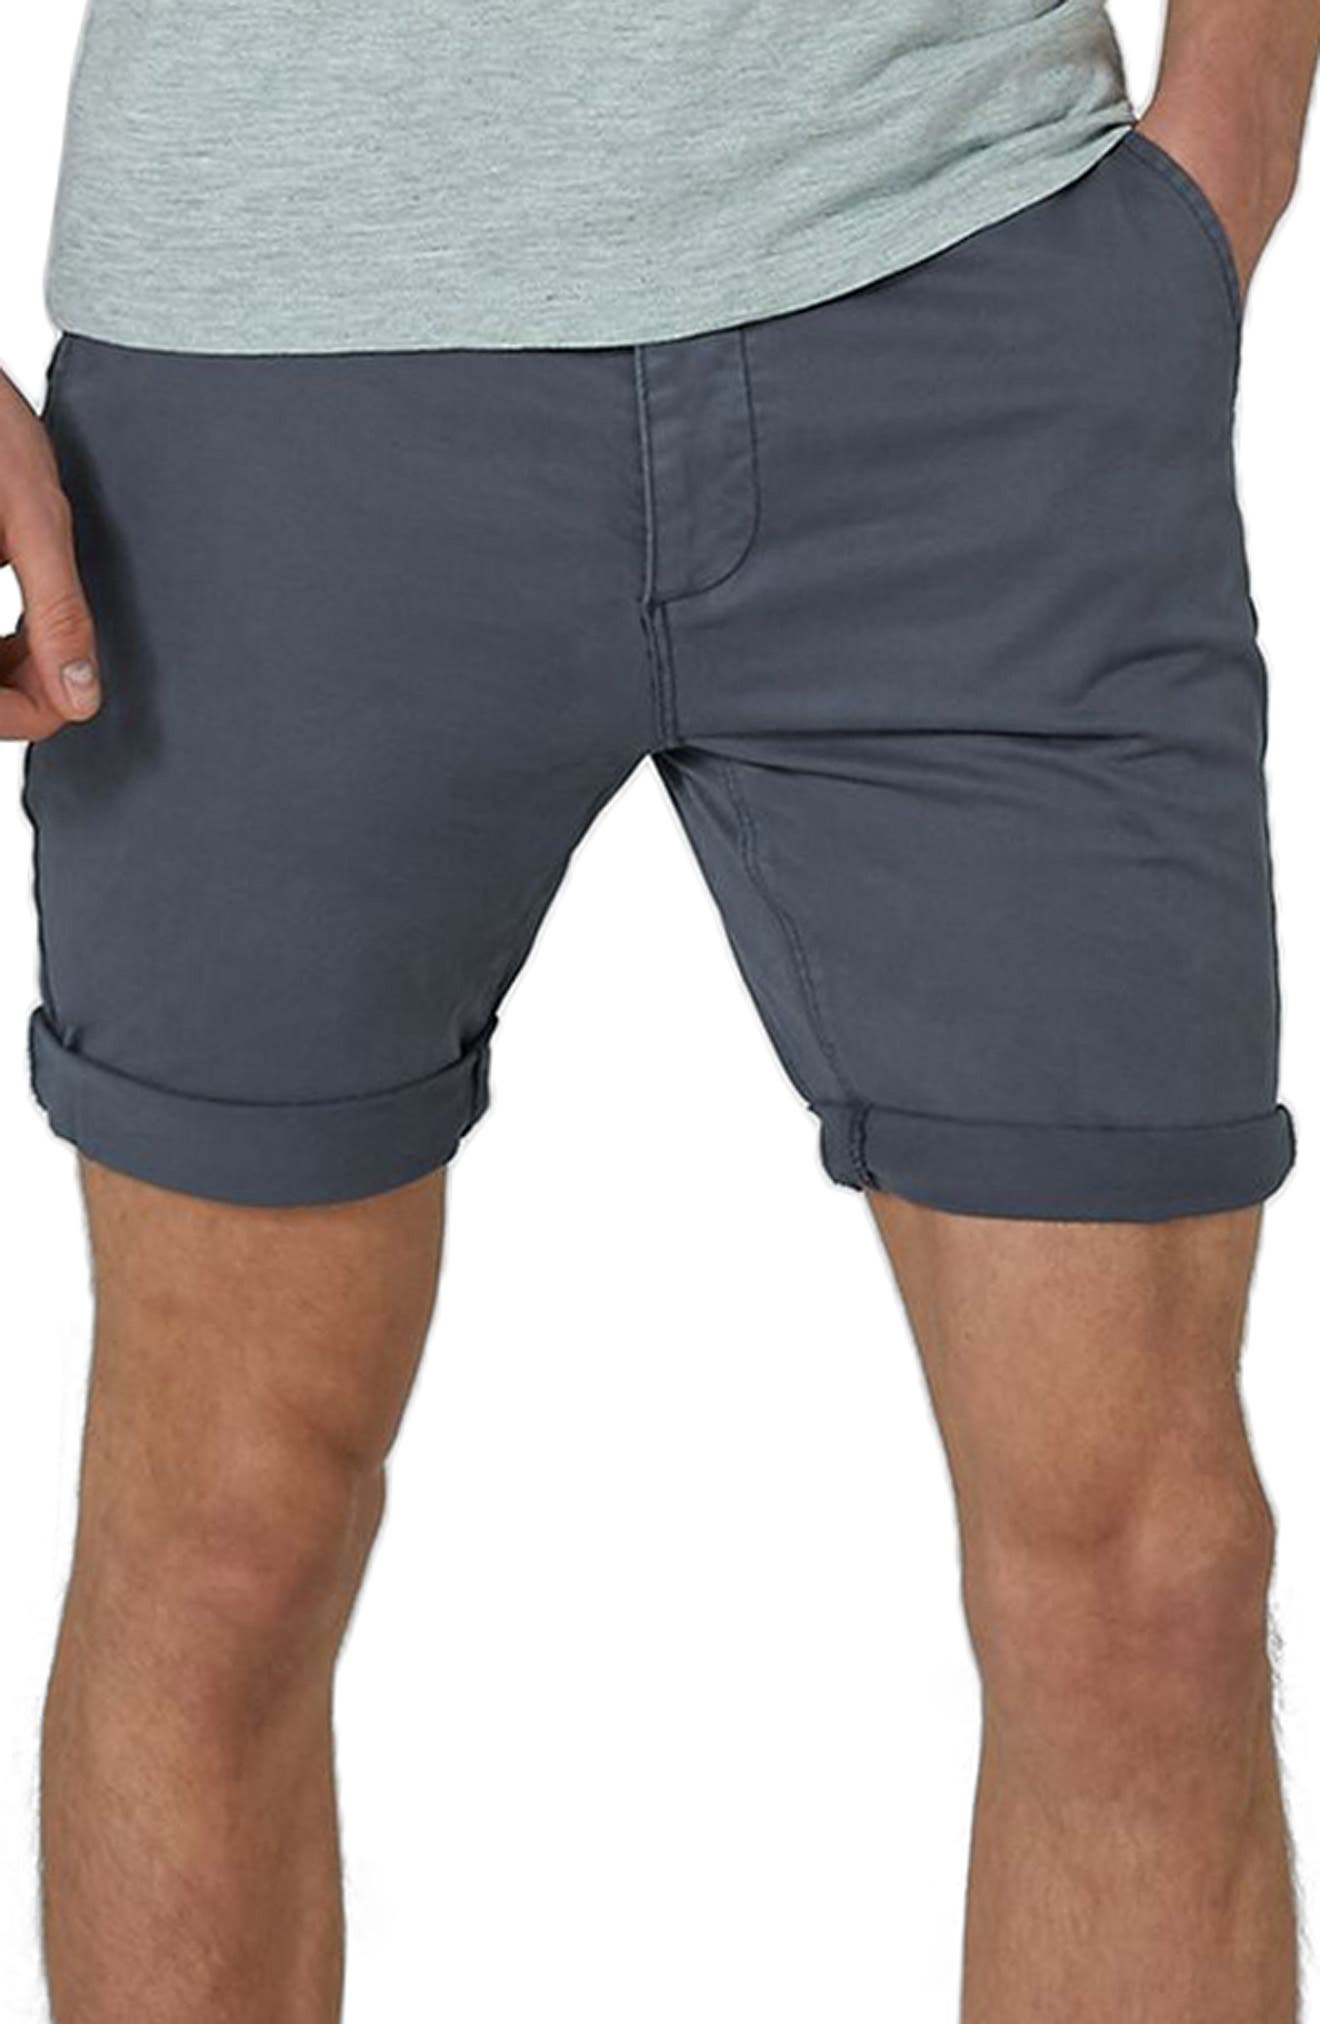 Stretch Skinny Chino Shorts,                             Main thumbnail 1, color,                             Dark Blue